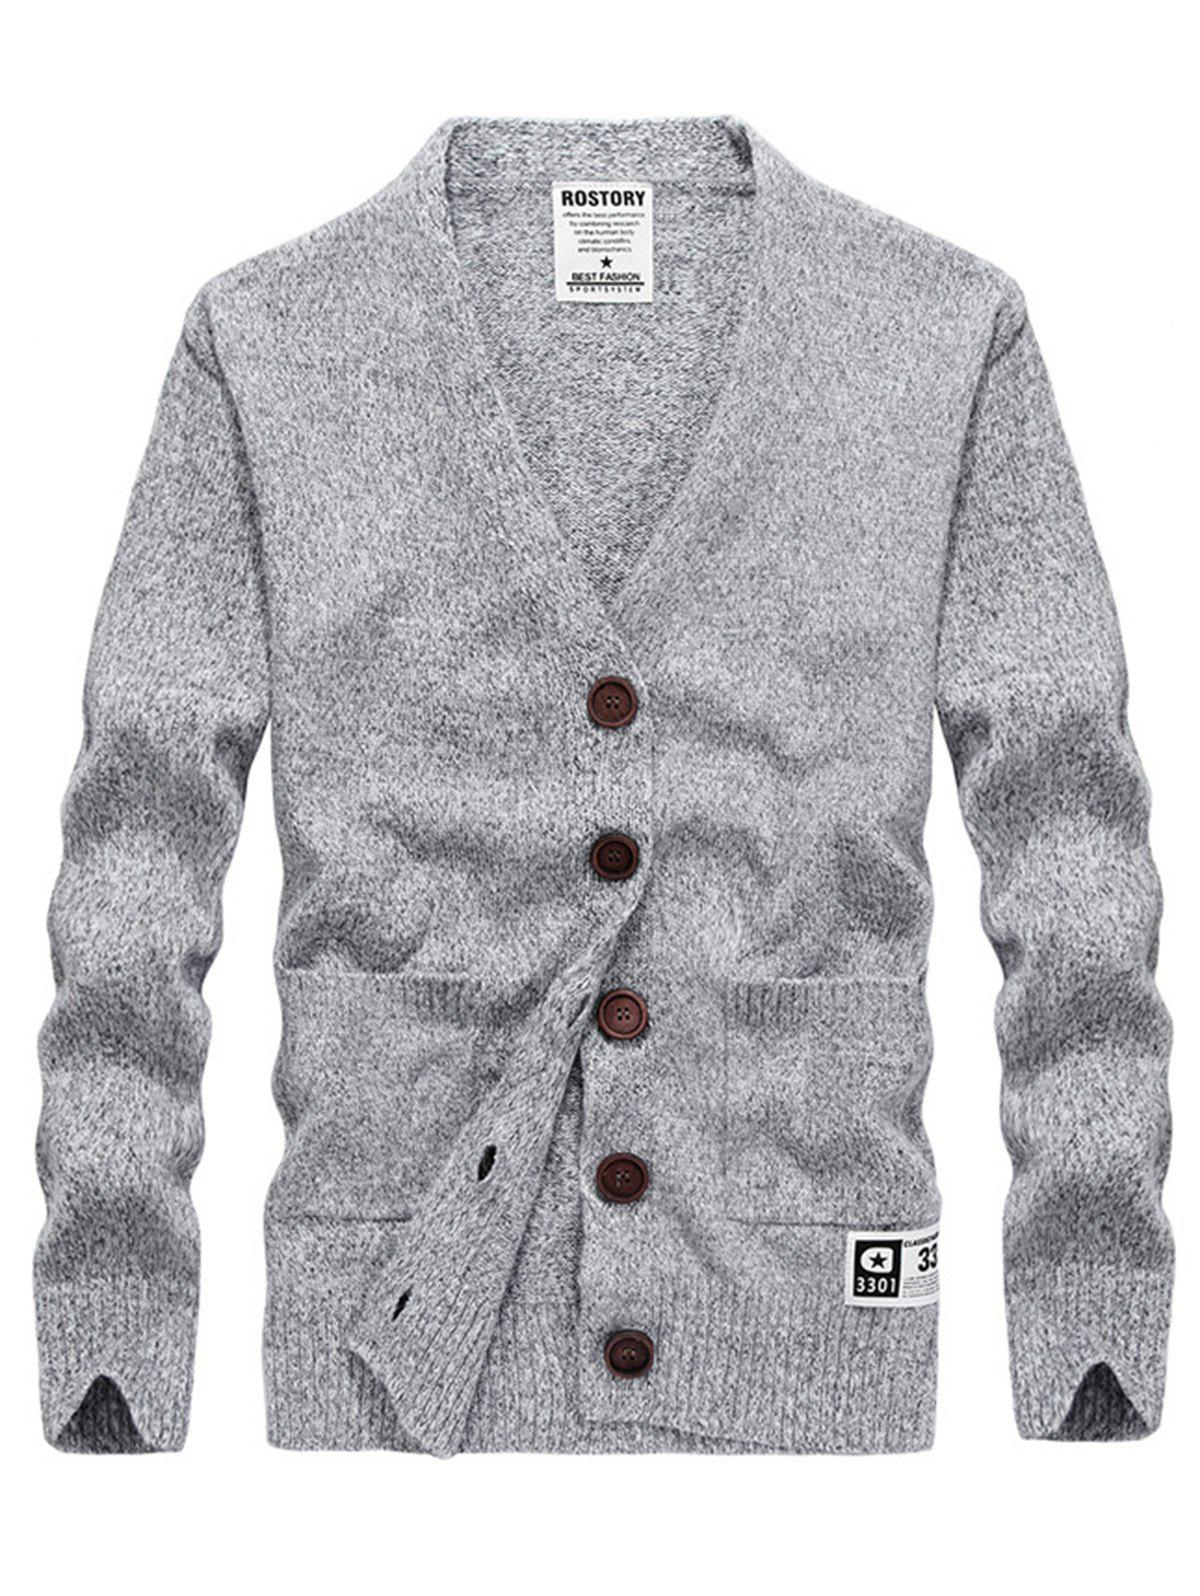 Button Up Cashmere V Neck Cardigan - LIGHT GRAY L